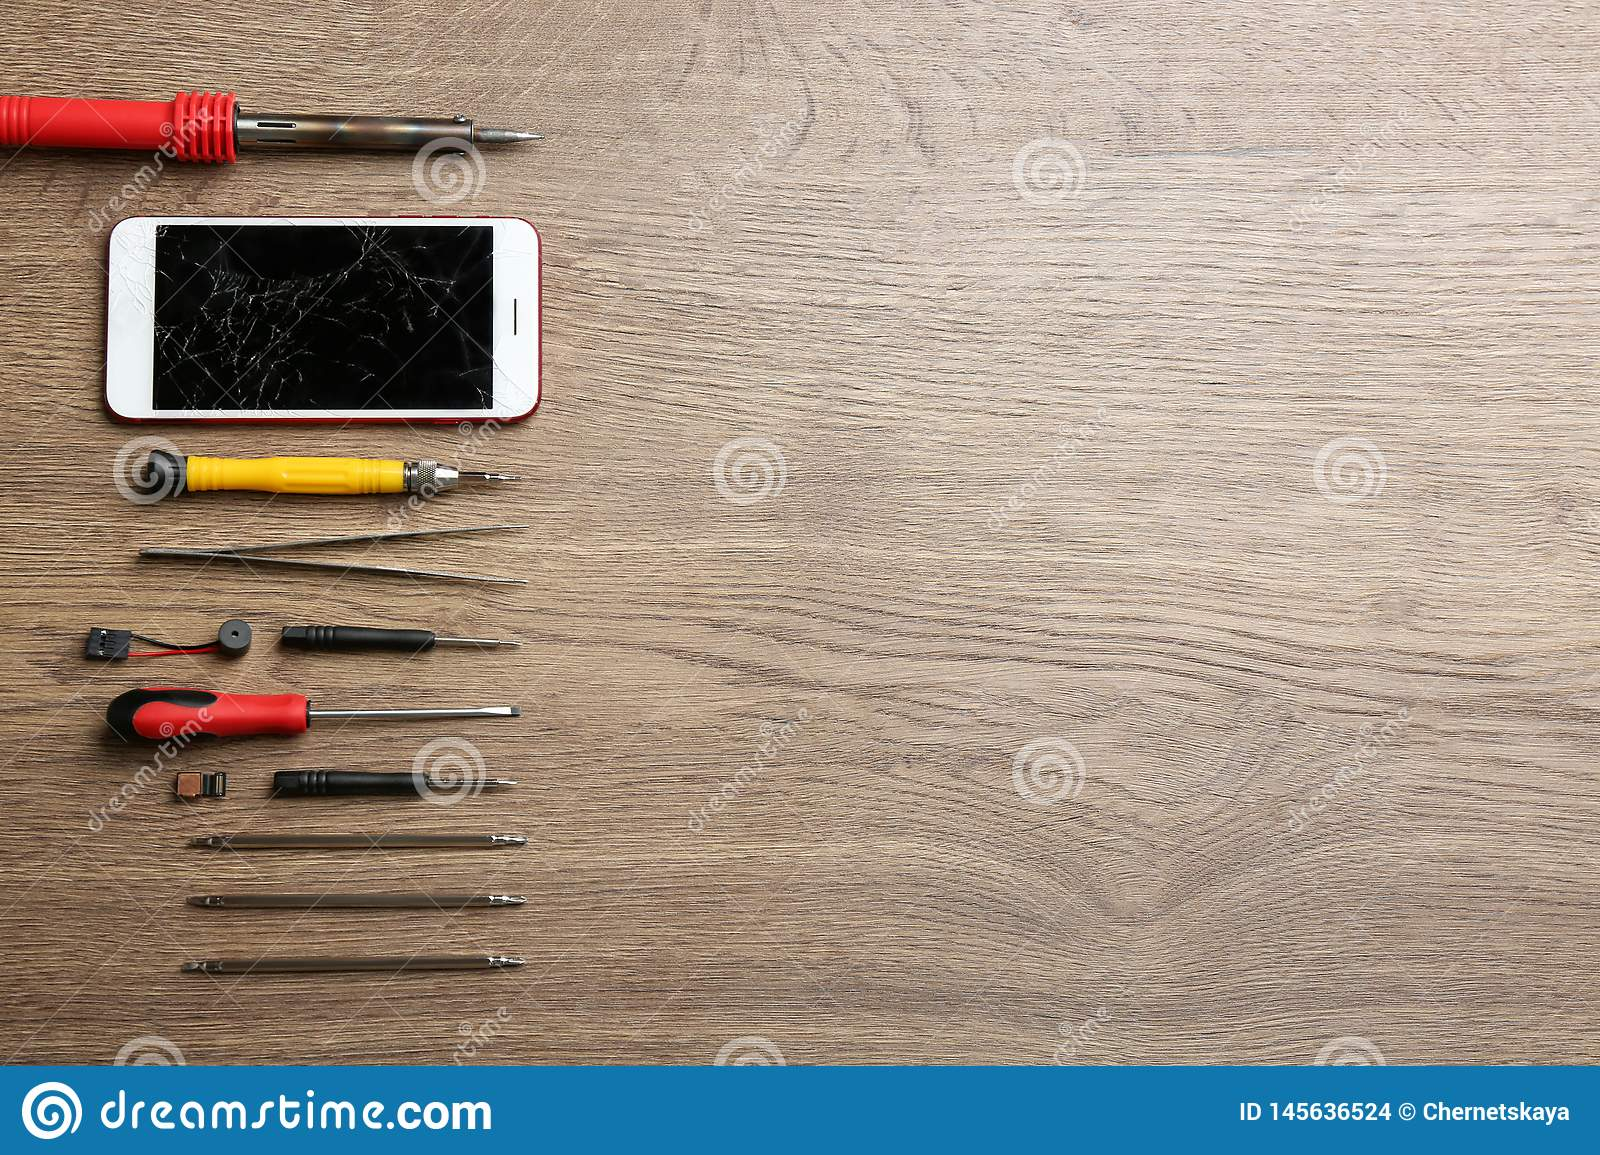 Broken mobile phone and repair tools on wooden table, flat lay.